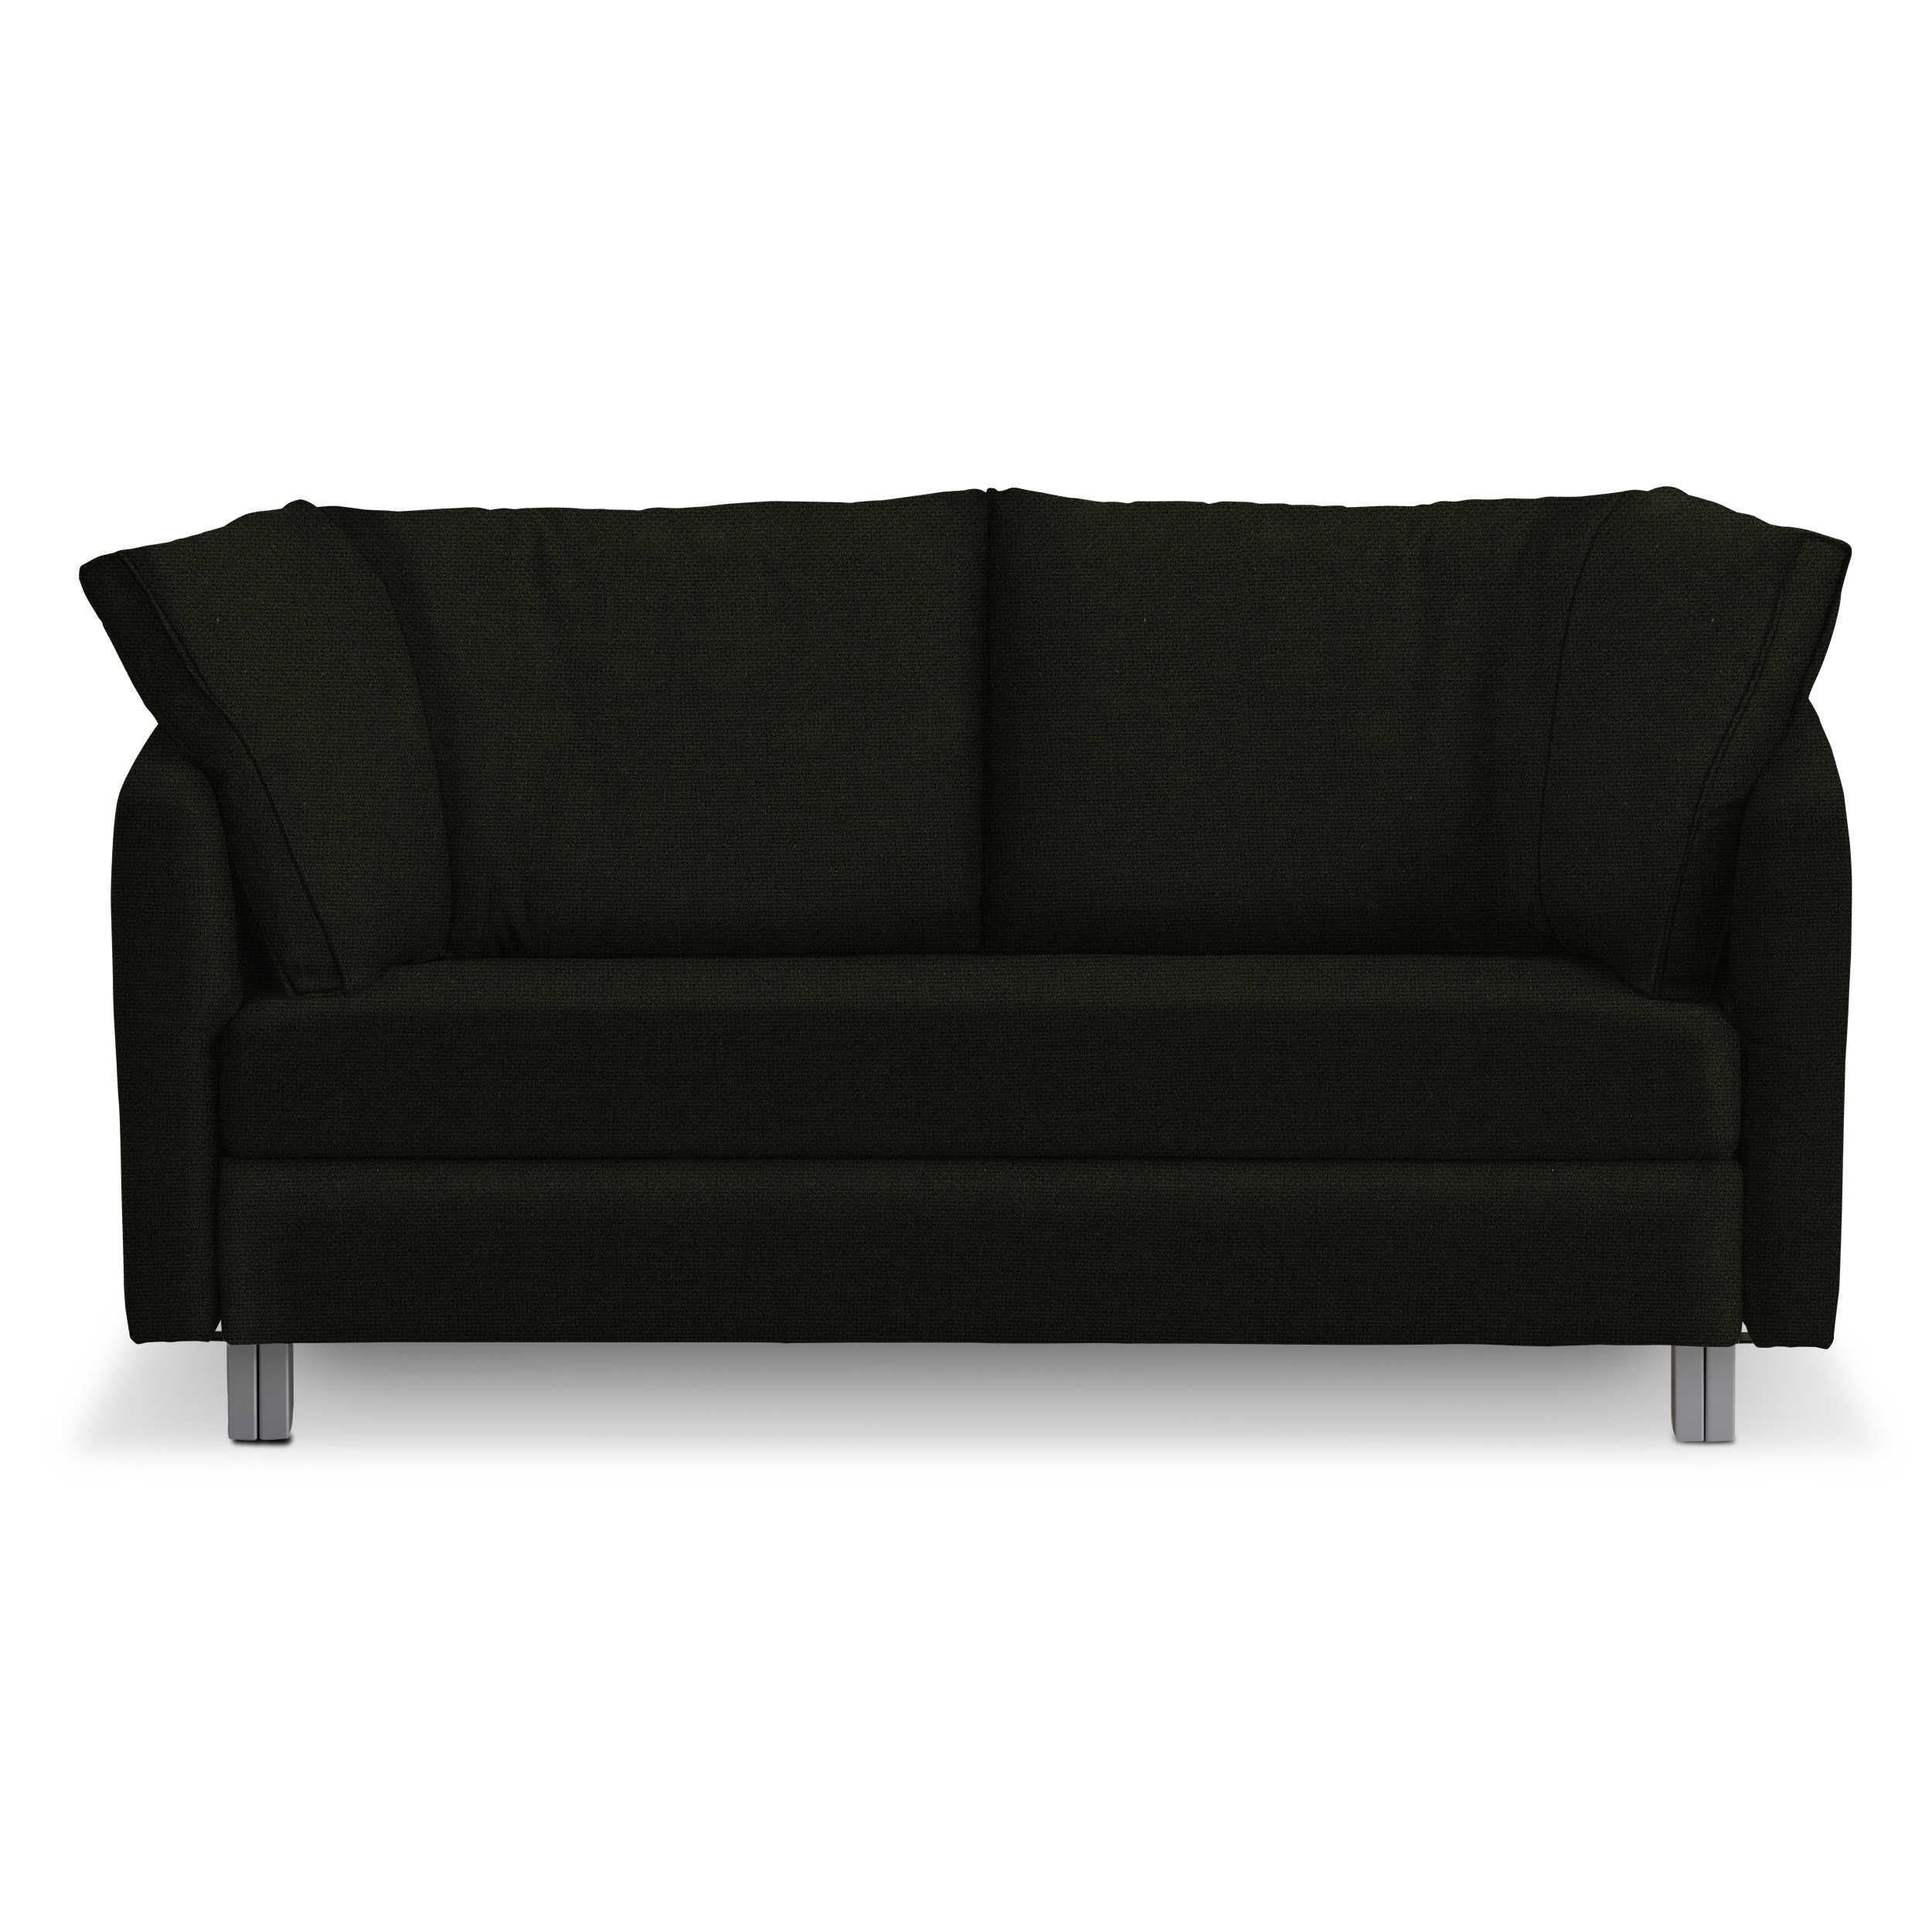 franz fertig schlafsofa mara schwarz stoff online kaufen bei woonio. Black Bedroom Furniture Sets. Home Design Ideas